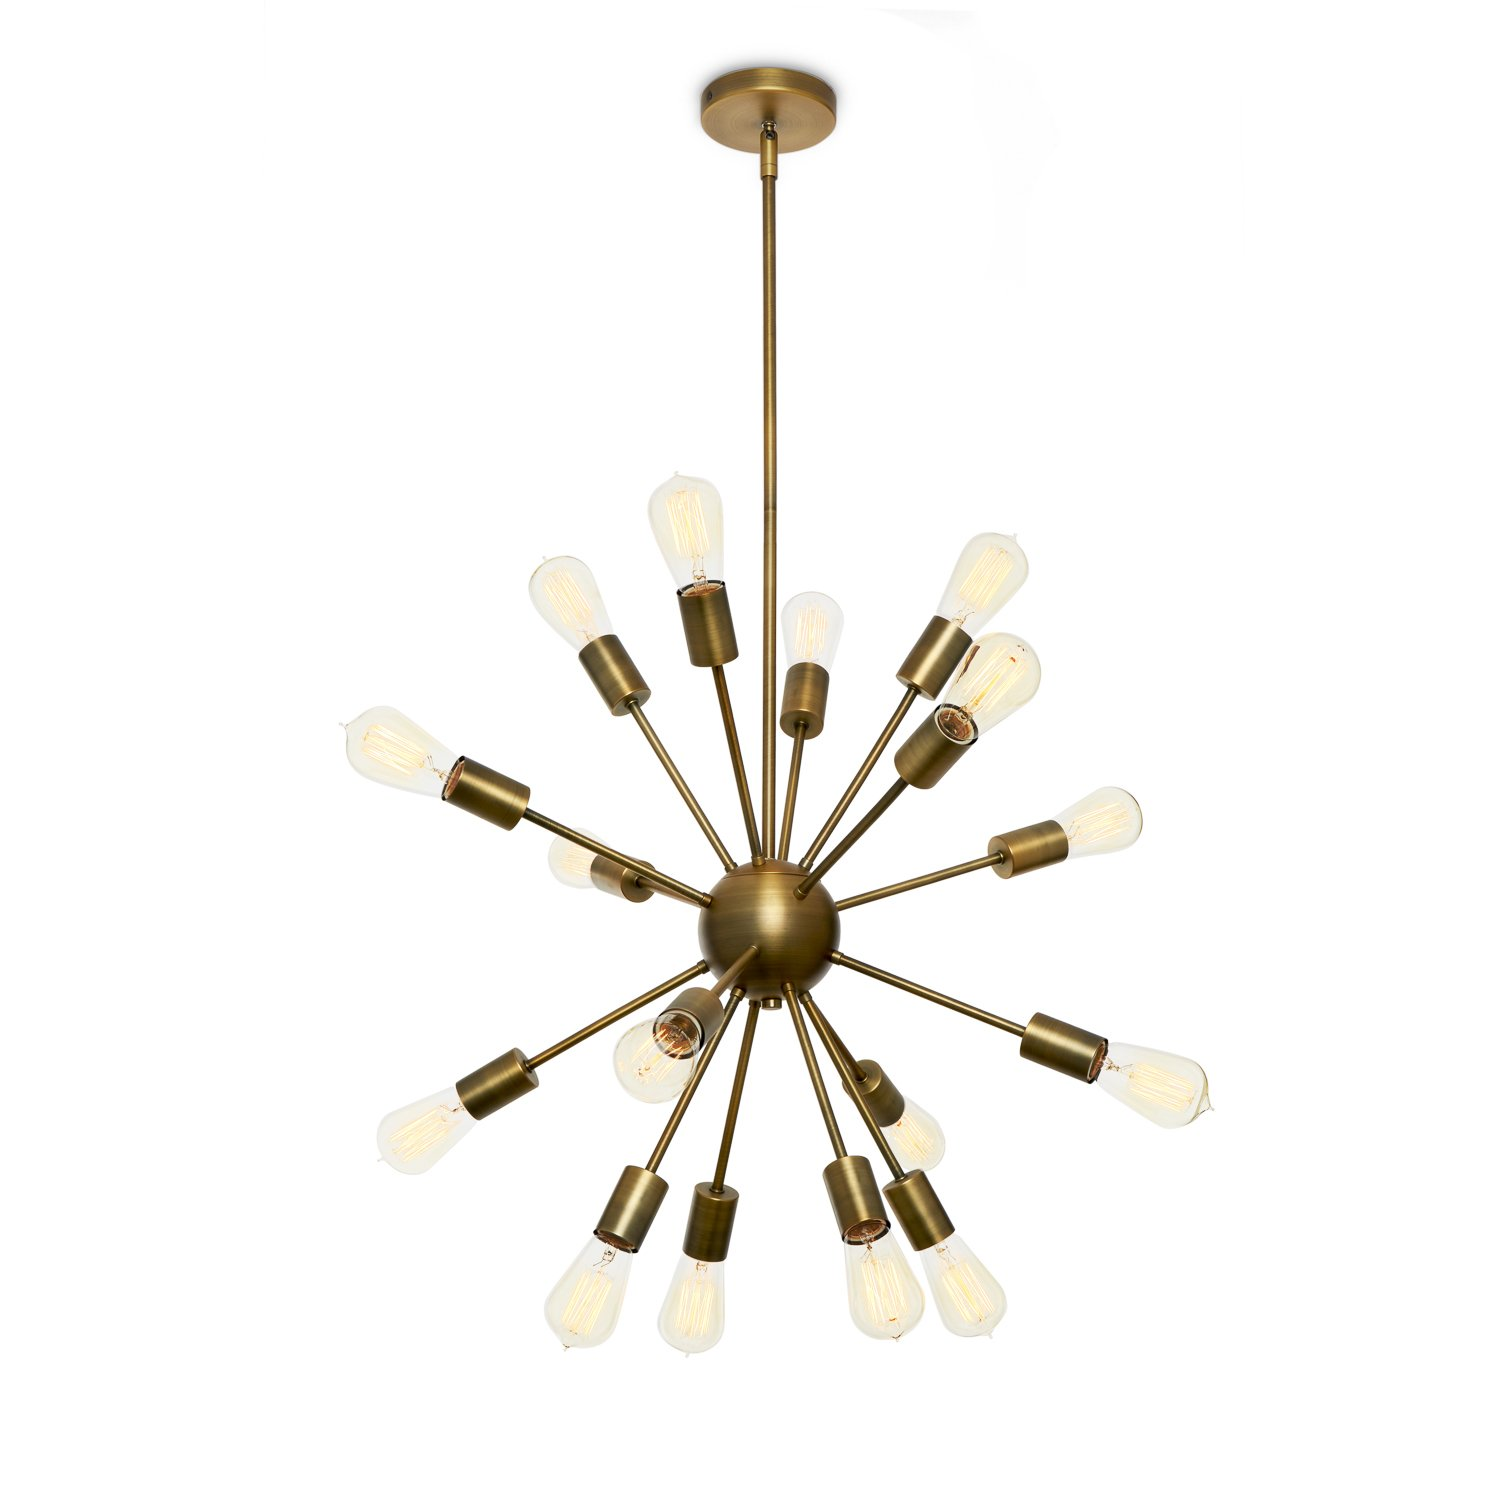 Brass sputnik chandelier 16 light mid century ceiling fixture modern starburst style dimmable damp located etl listed